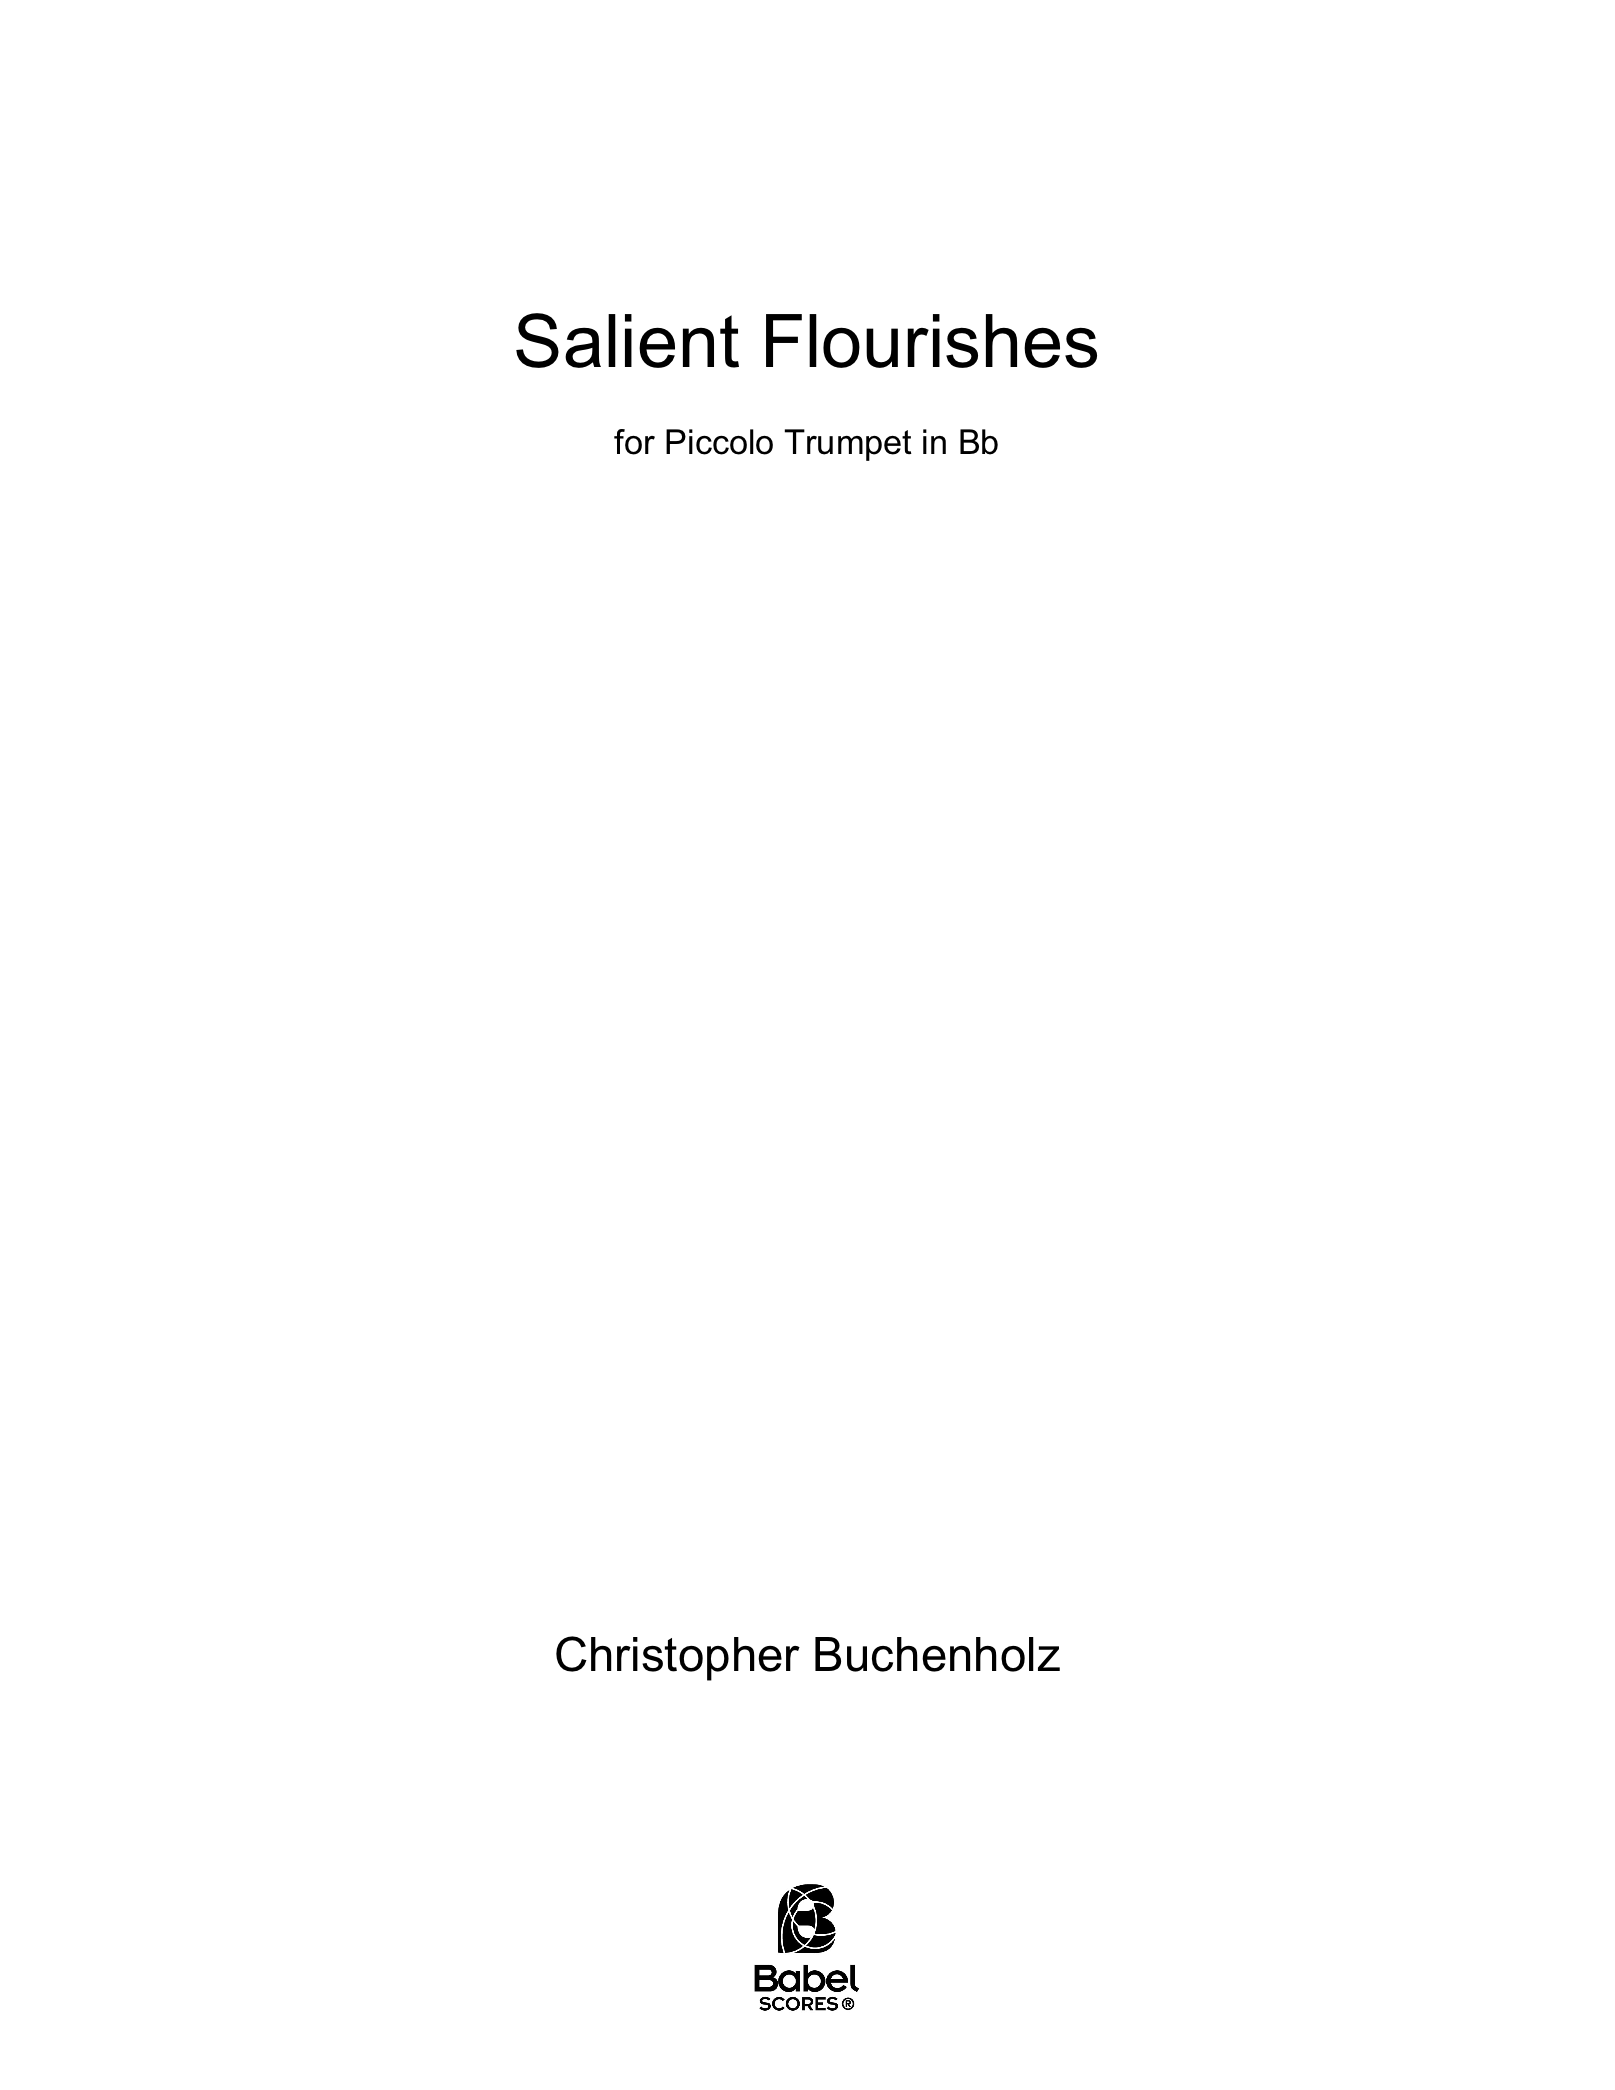 Salient Flourishes CARTA z 2 1 567